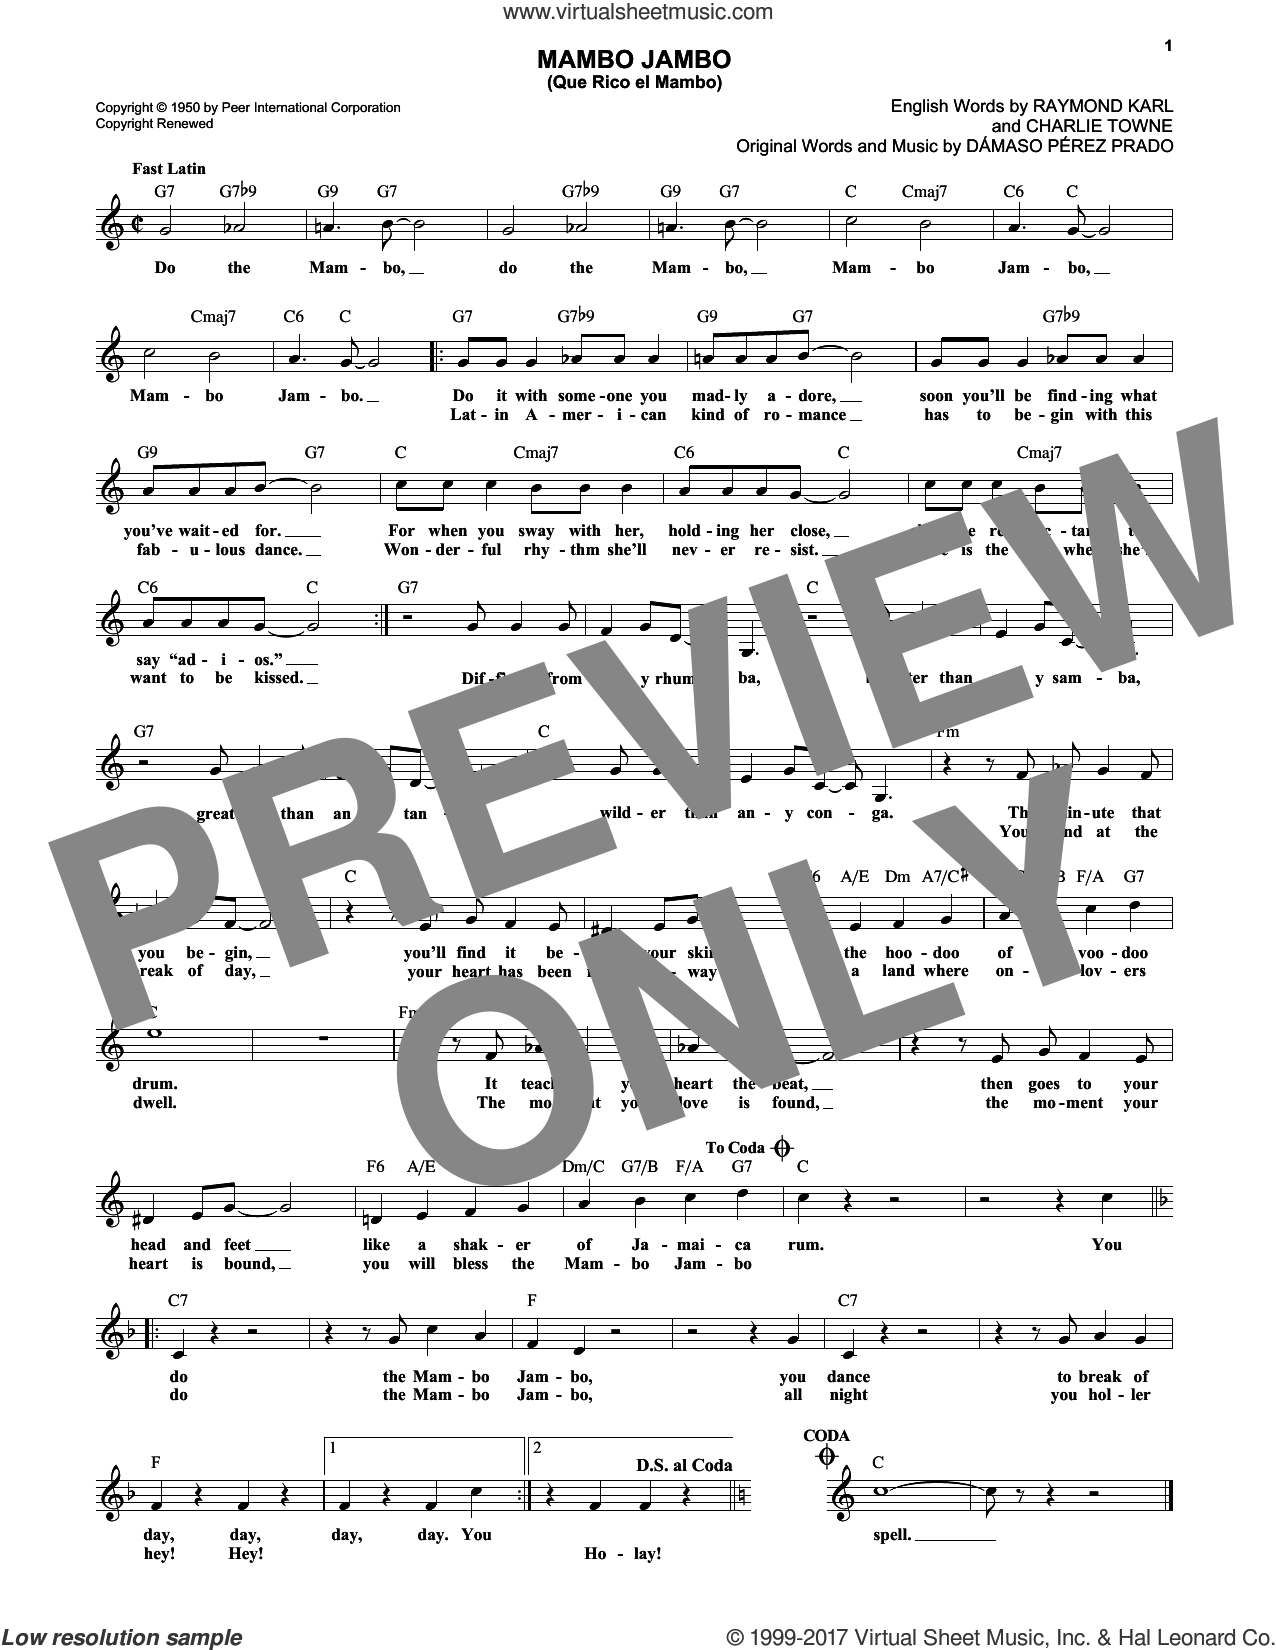 Mambo Jambo (Que Rico El Mambo) sheet music for voice and other instruments (fake book) by Raymond Karl, Dave Barbour and Damaso Perez Prado. Score Image Preview.